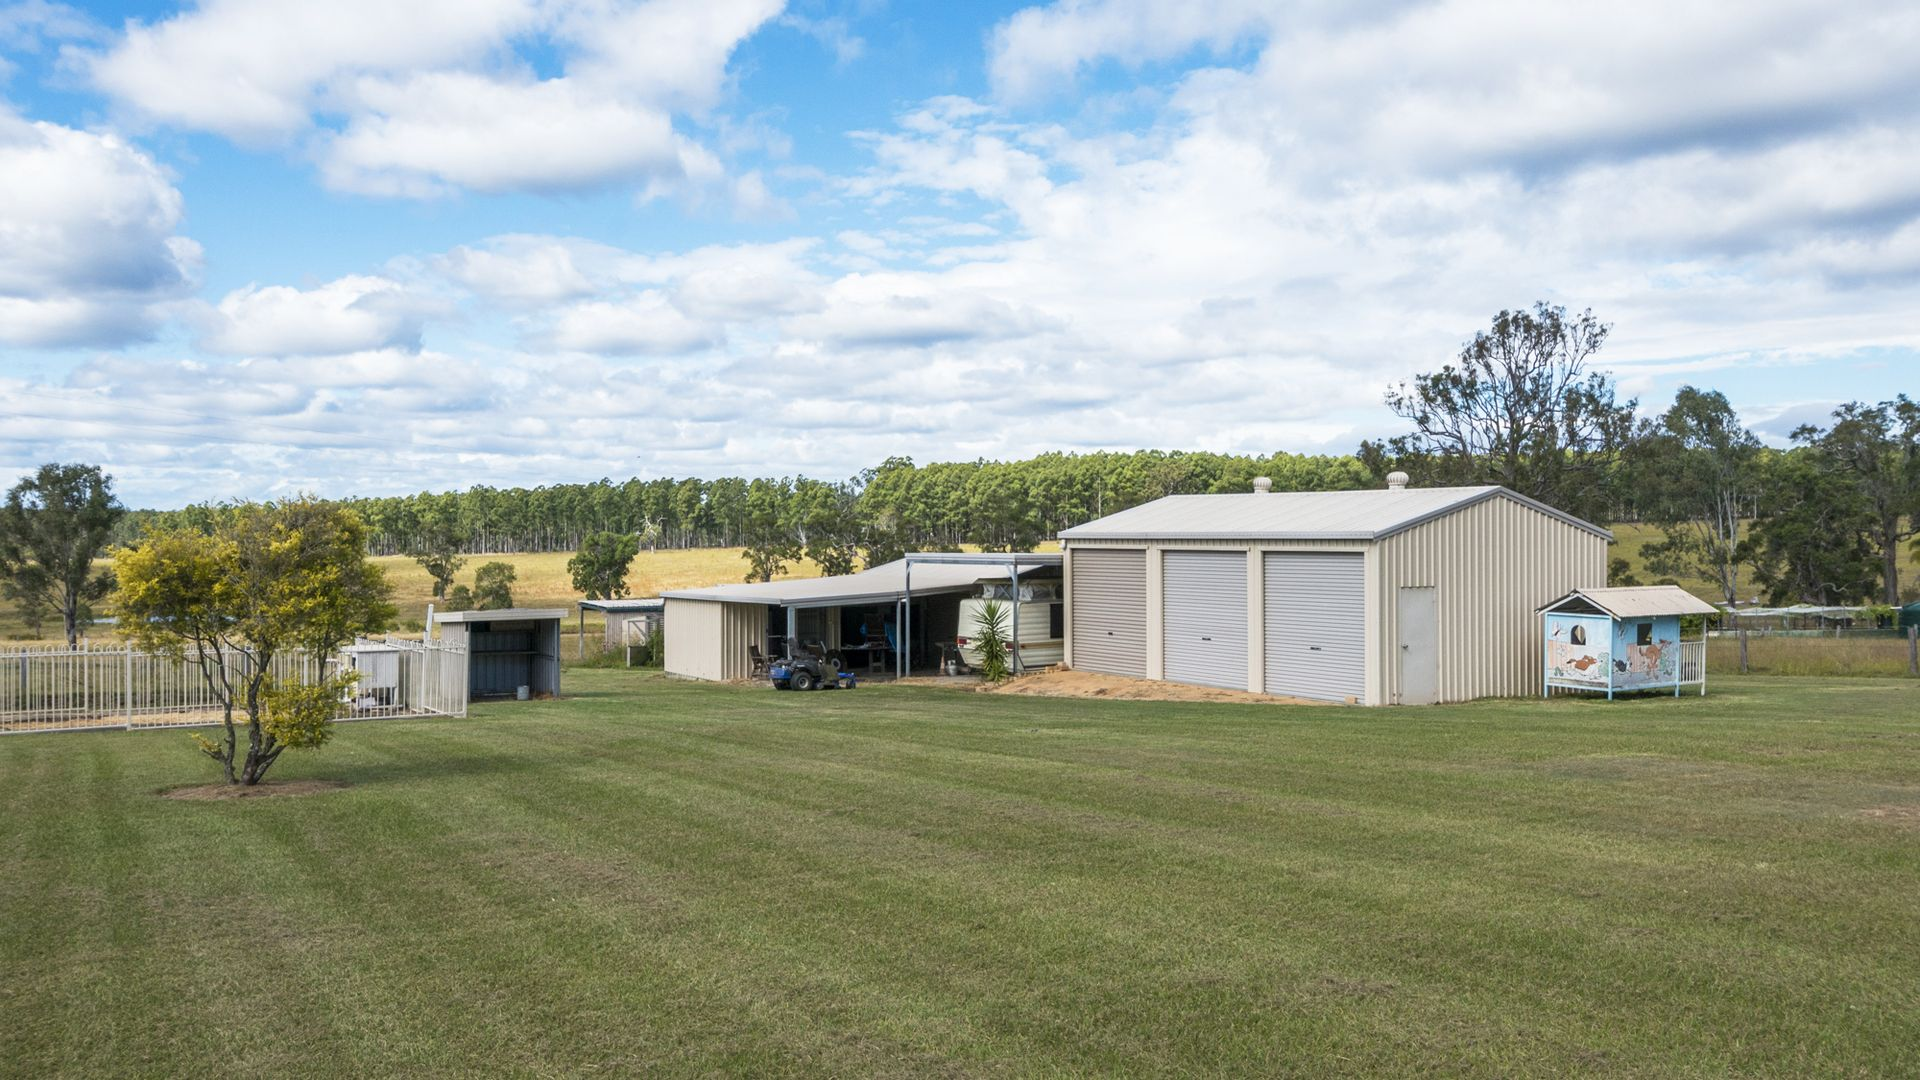 499 LOWER KANGAROO CREEK ROAD, Coutts Crossing NSW 2460, Image 2